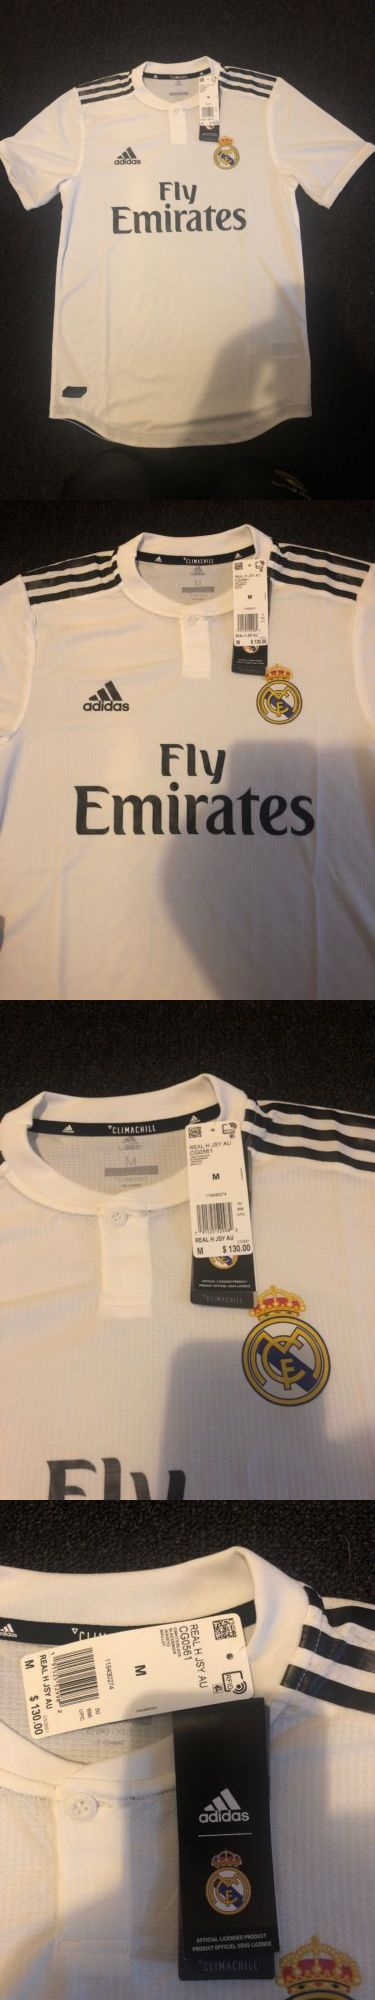 012e2b772 Clothing 33485  Real Madrid Home Soccer Jersey 2018 2019 Champions Patches  Size M - New -  BUY IT NOW ONLY   60 on  eBay  clothing  madrid  soccer   jersey ...